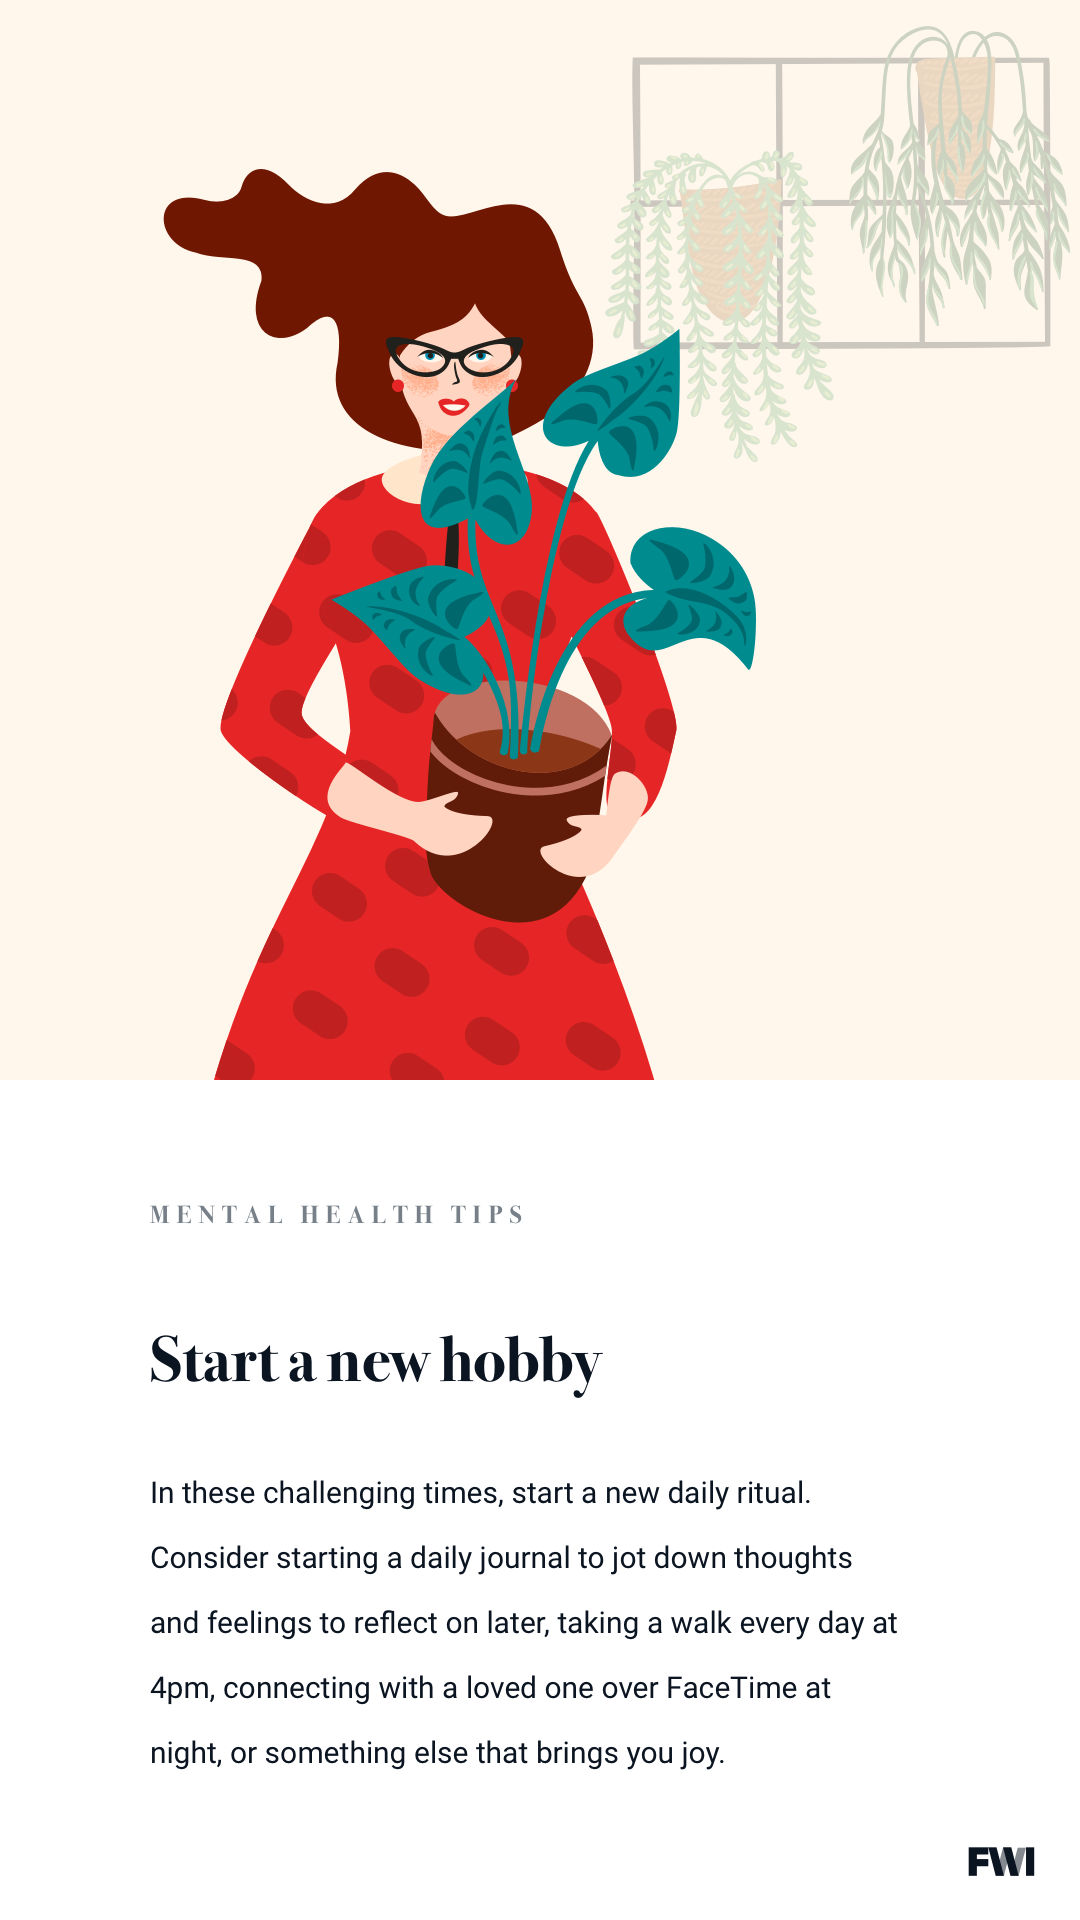 starting a hobby mental health tip vertical content download